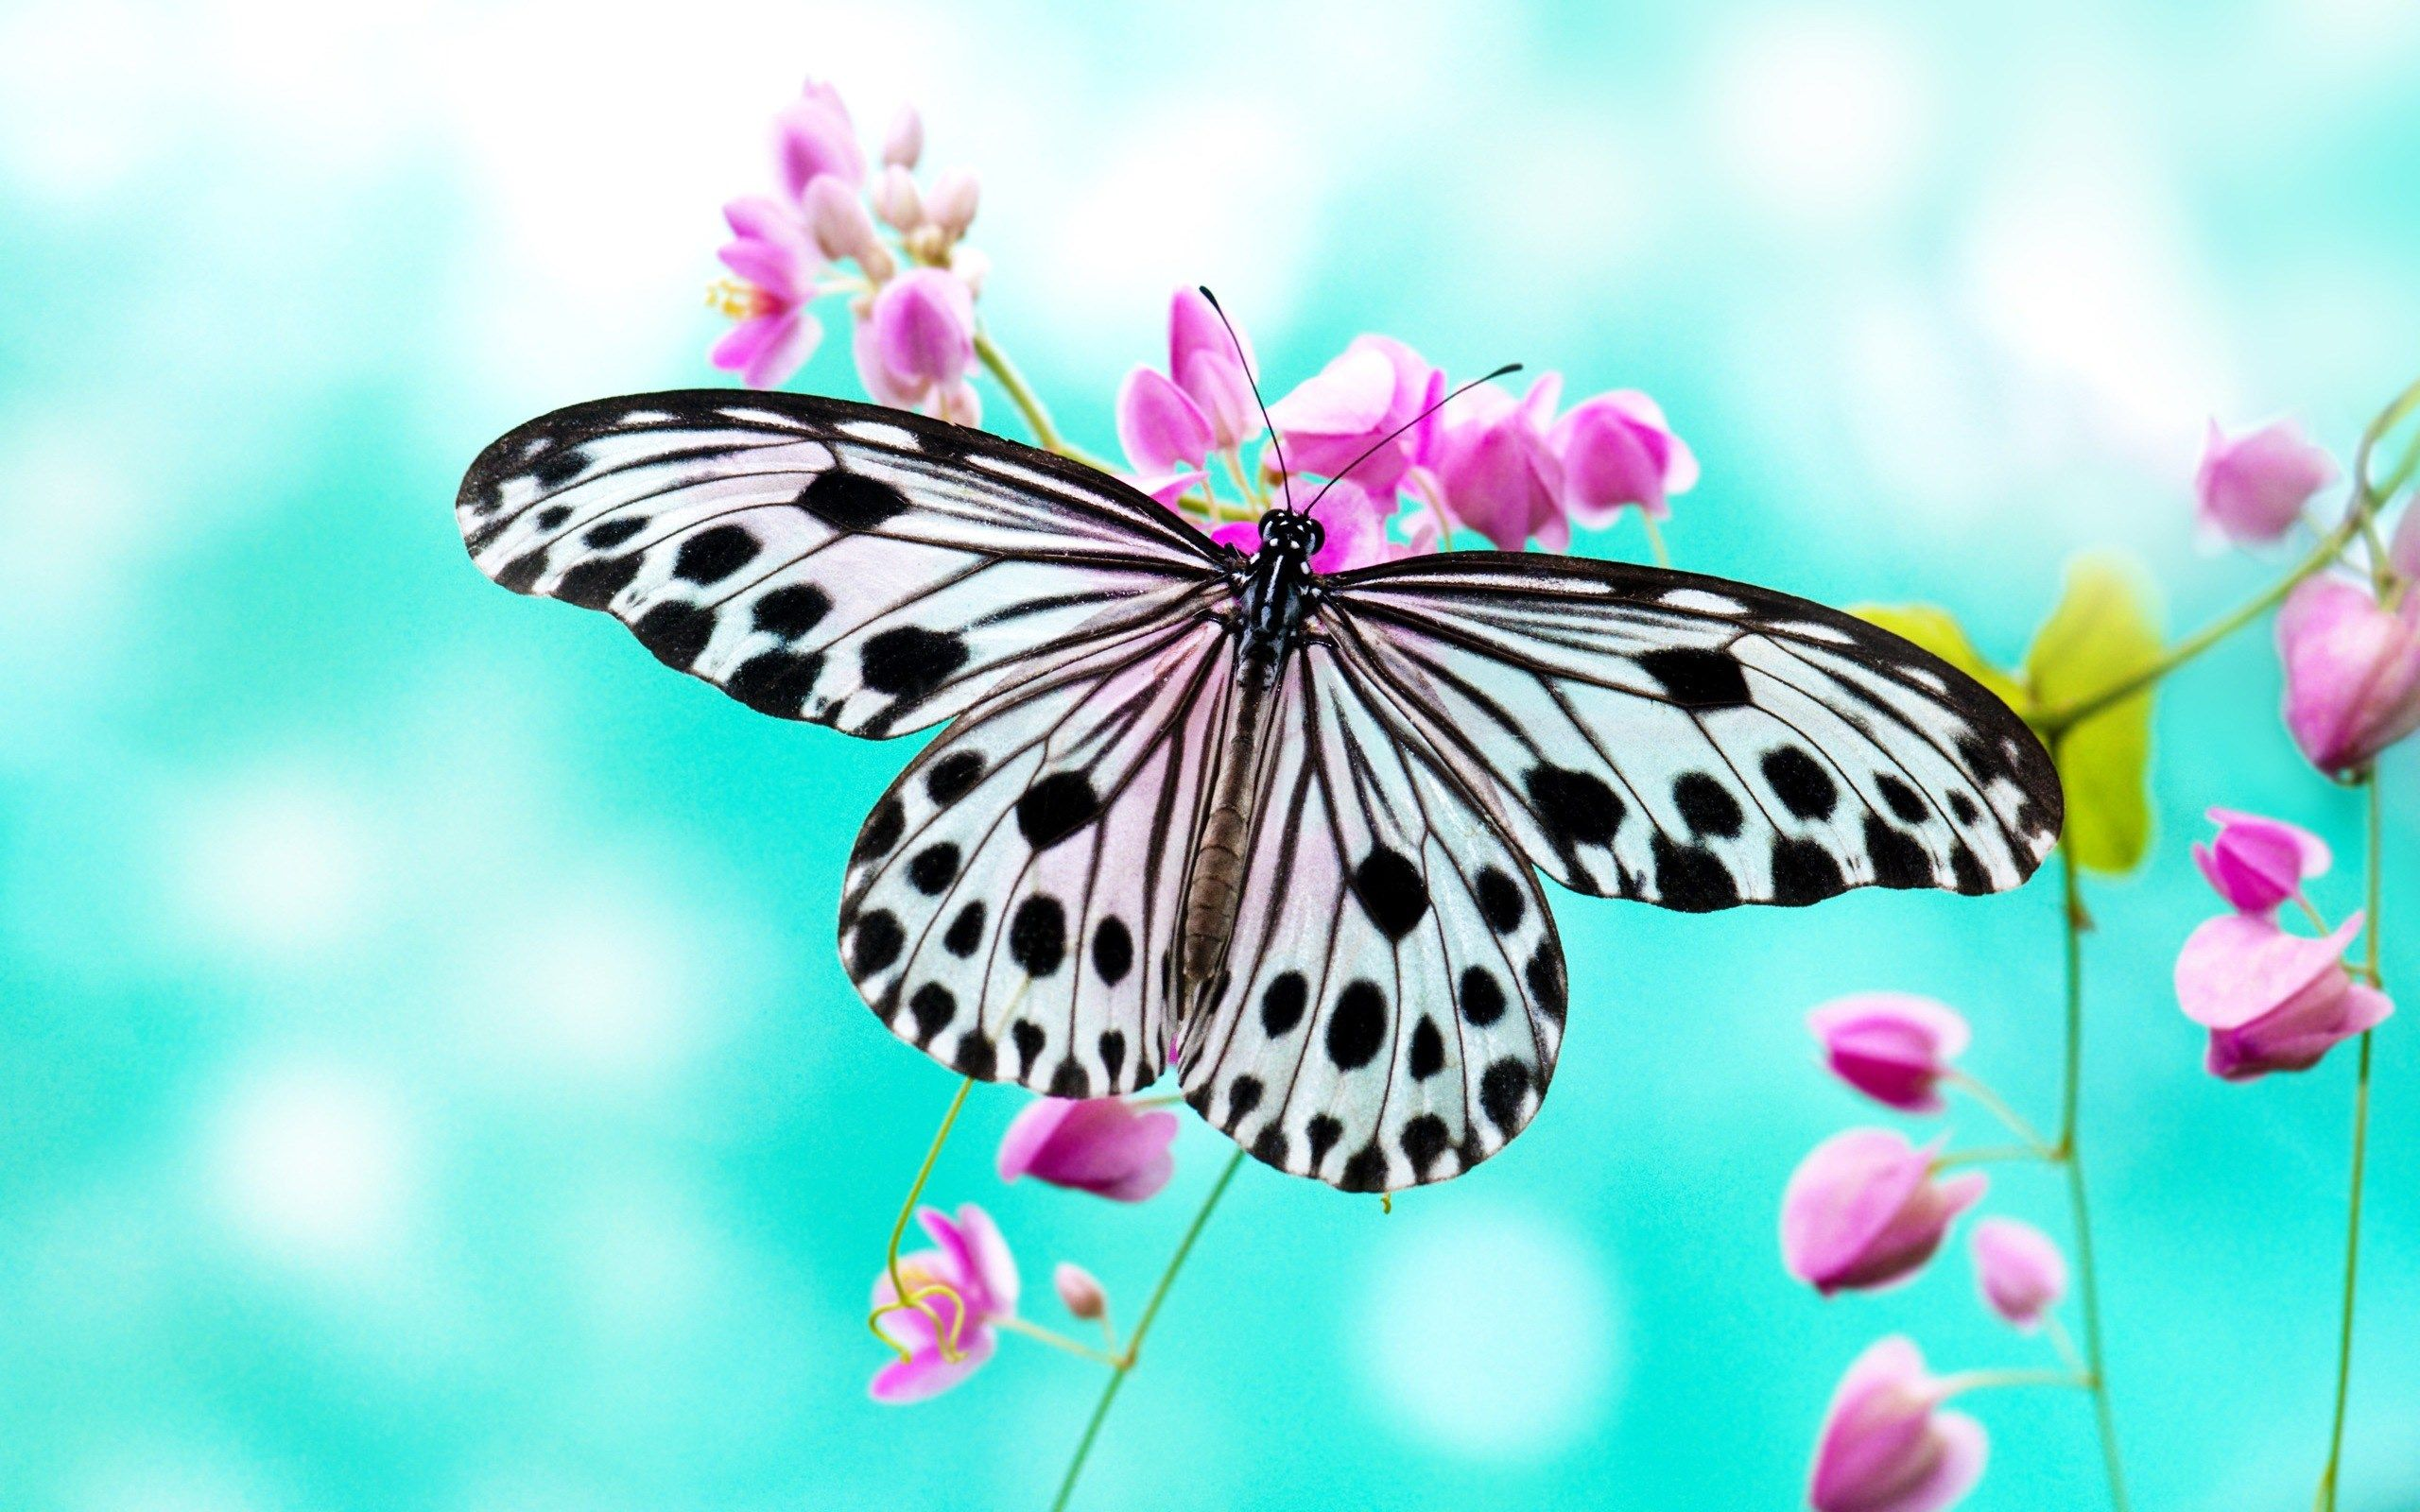 Top Wallpaper High Quality Butterfly - 2da5aa5d68cea122ce534c2bca70aaa2  You Should Have_47910.jpg